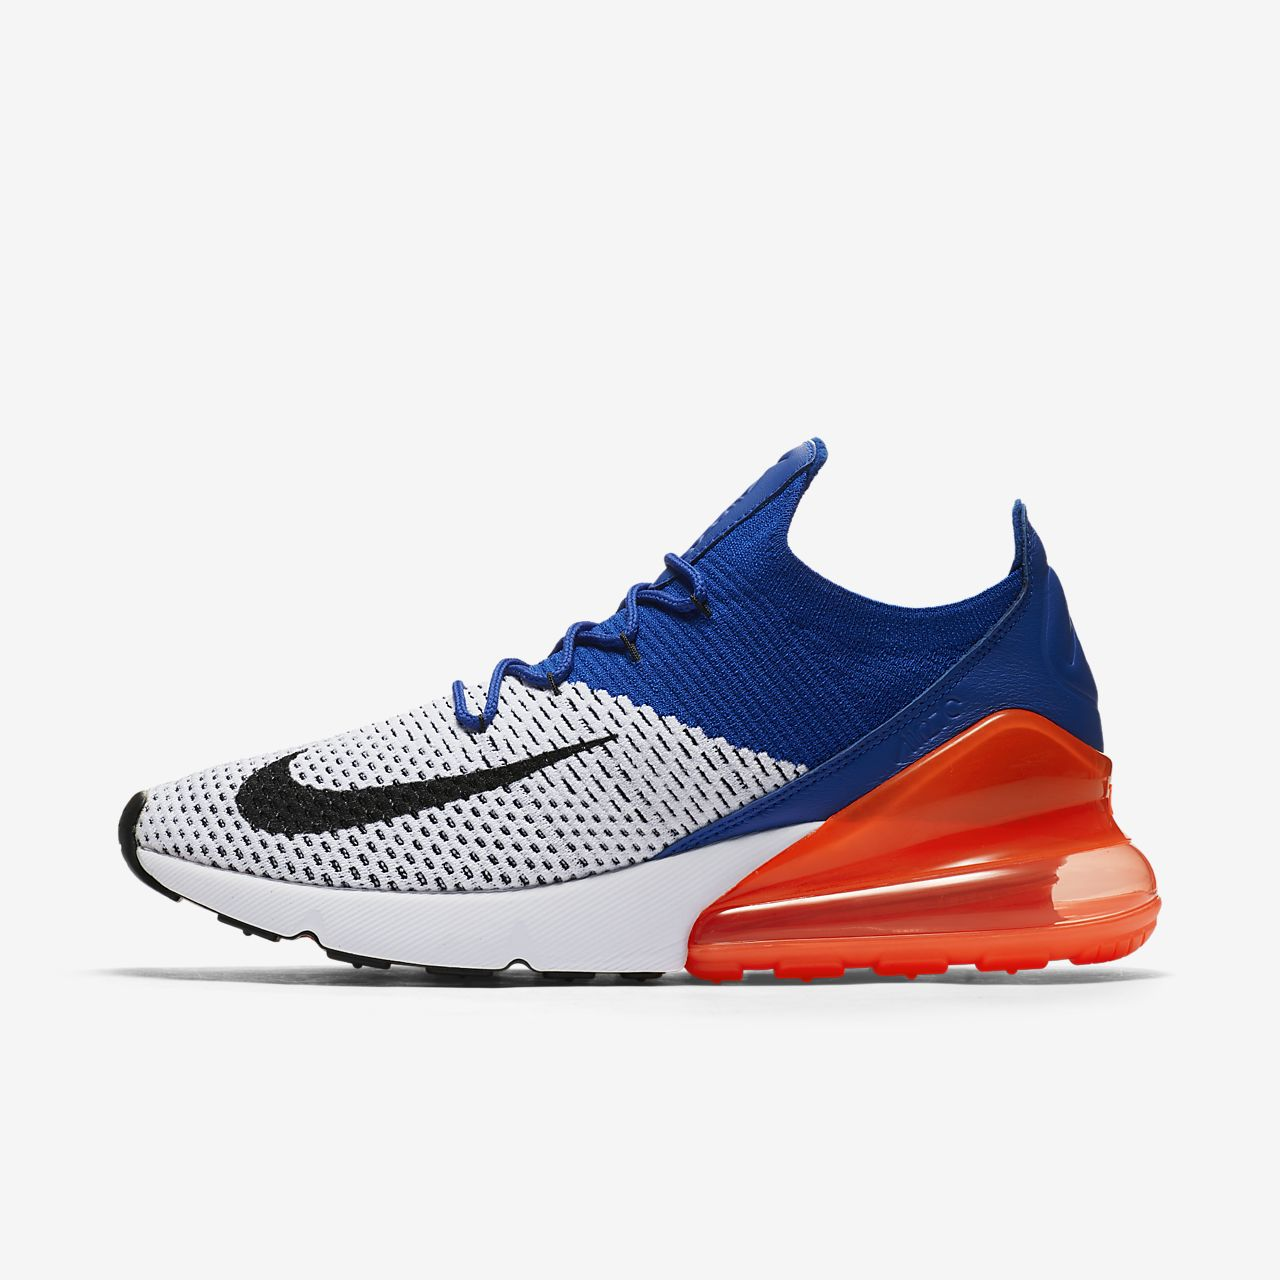 Acquista nike air max 270 flyknit blu - OFF44% sconti